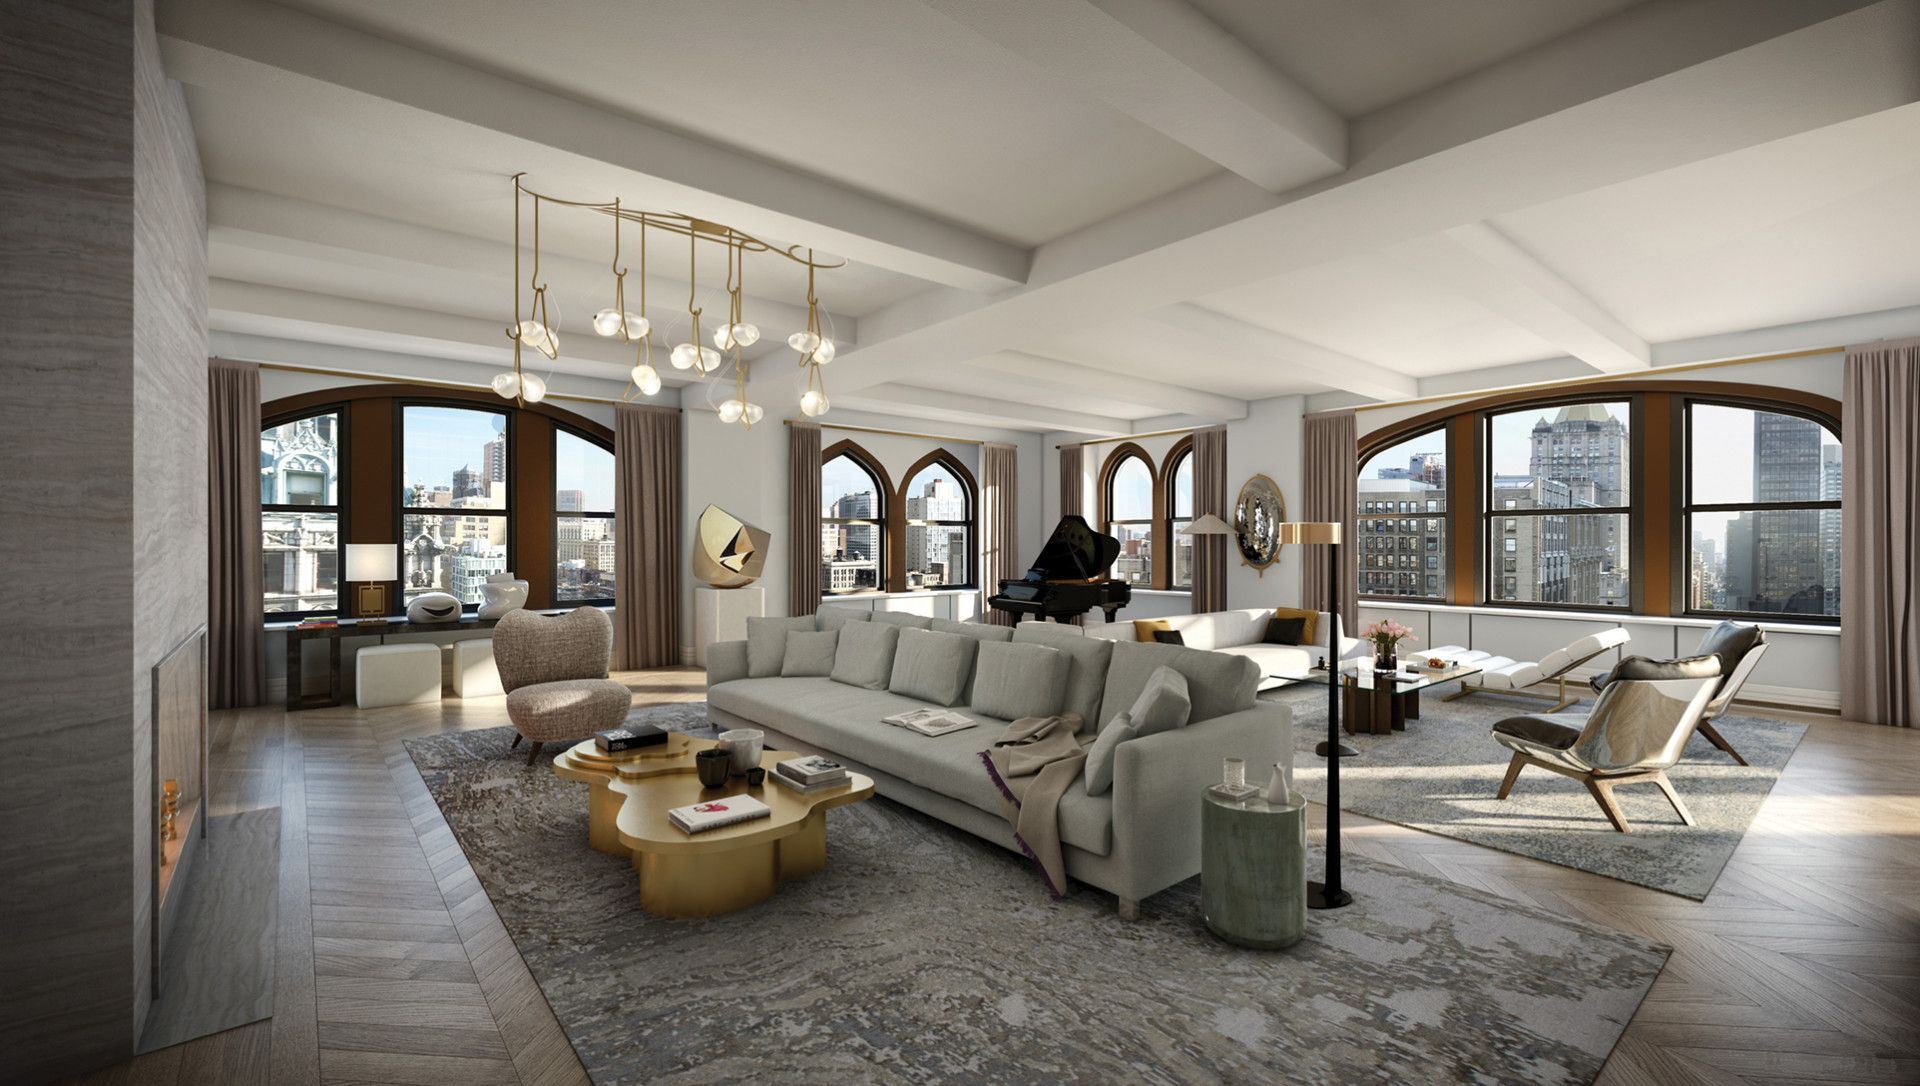 Pembrooke Ives Is A New York Interior Design Firm That Specializes In Creating Luxurious Residential Interiors